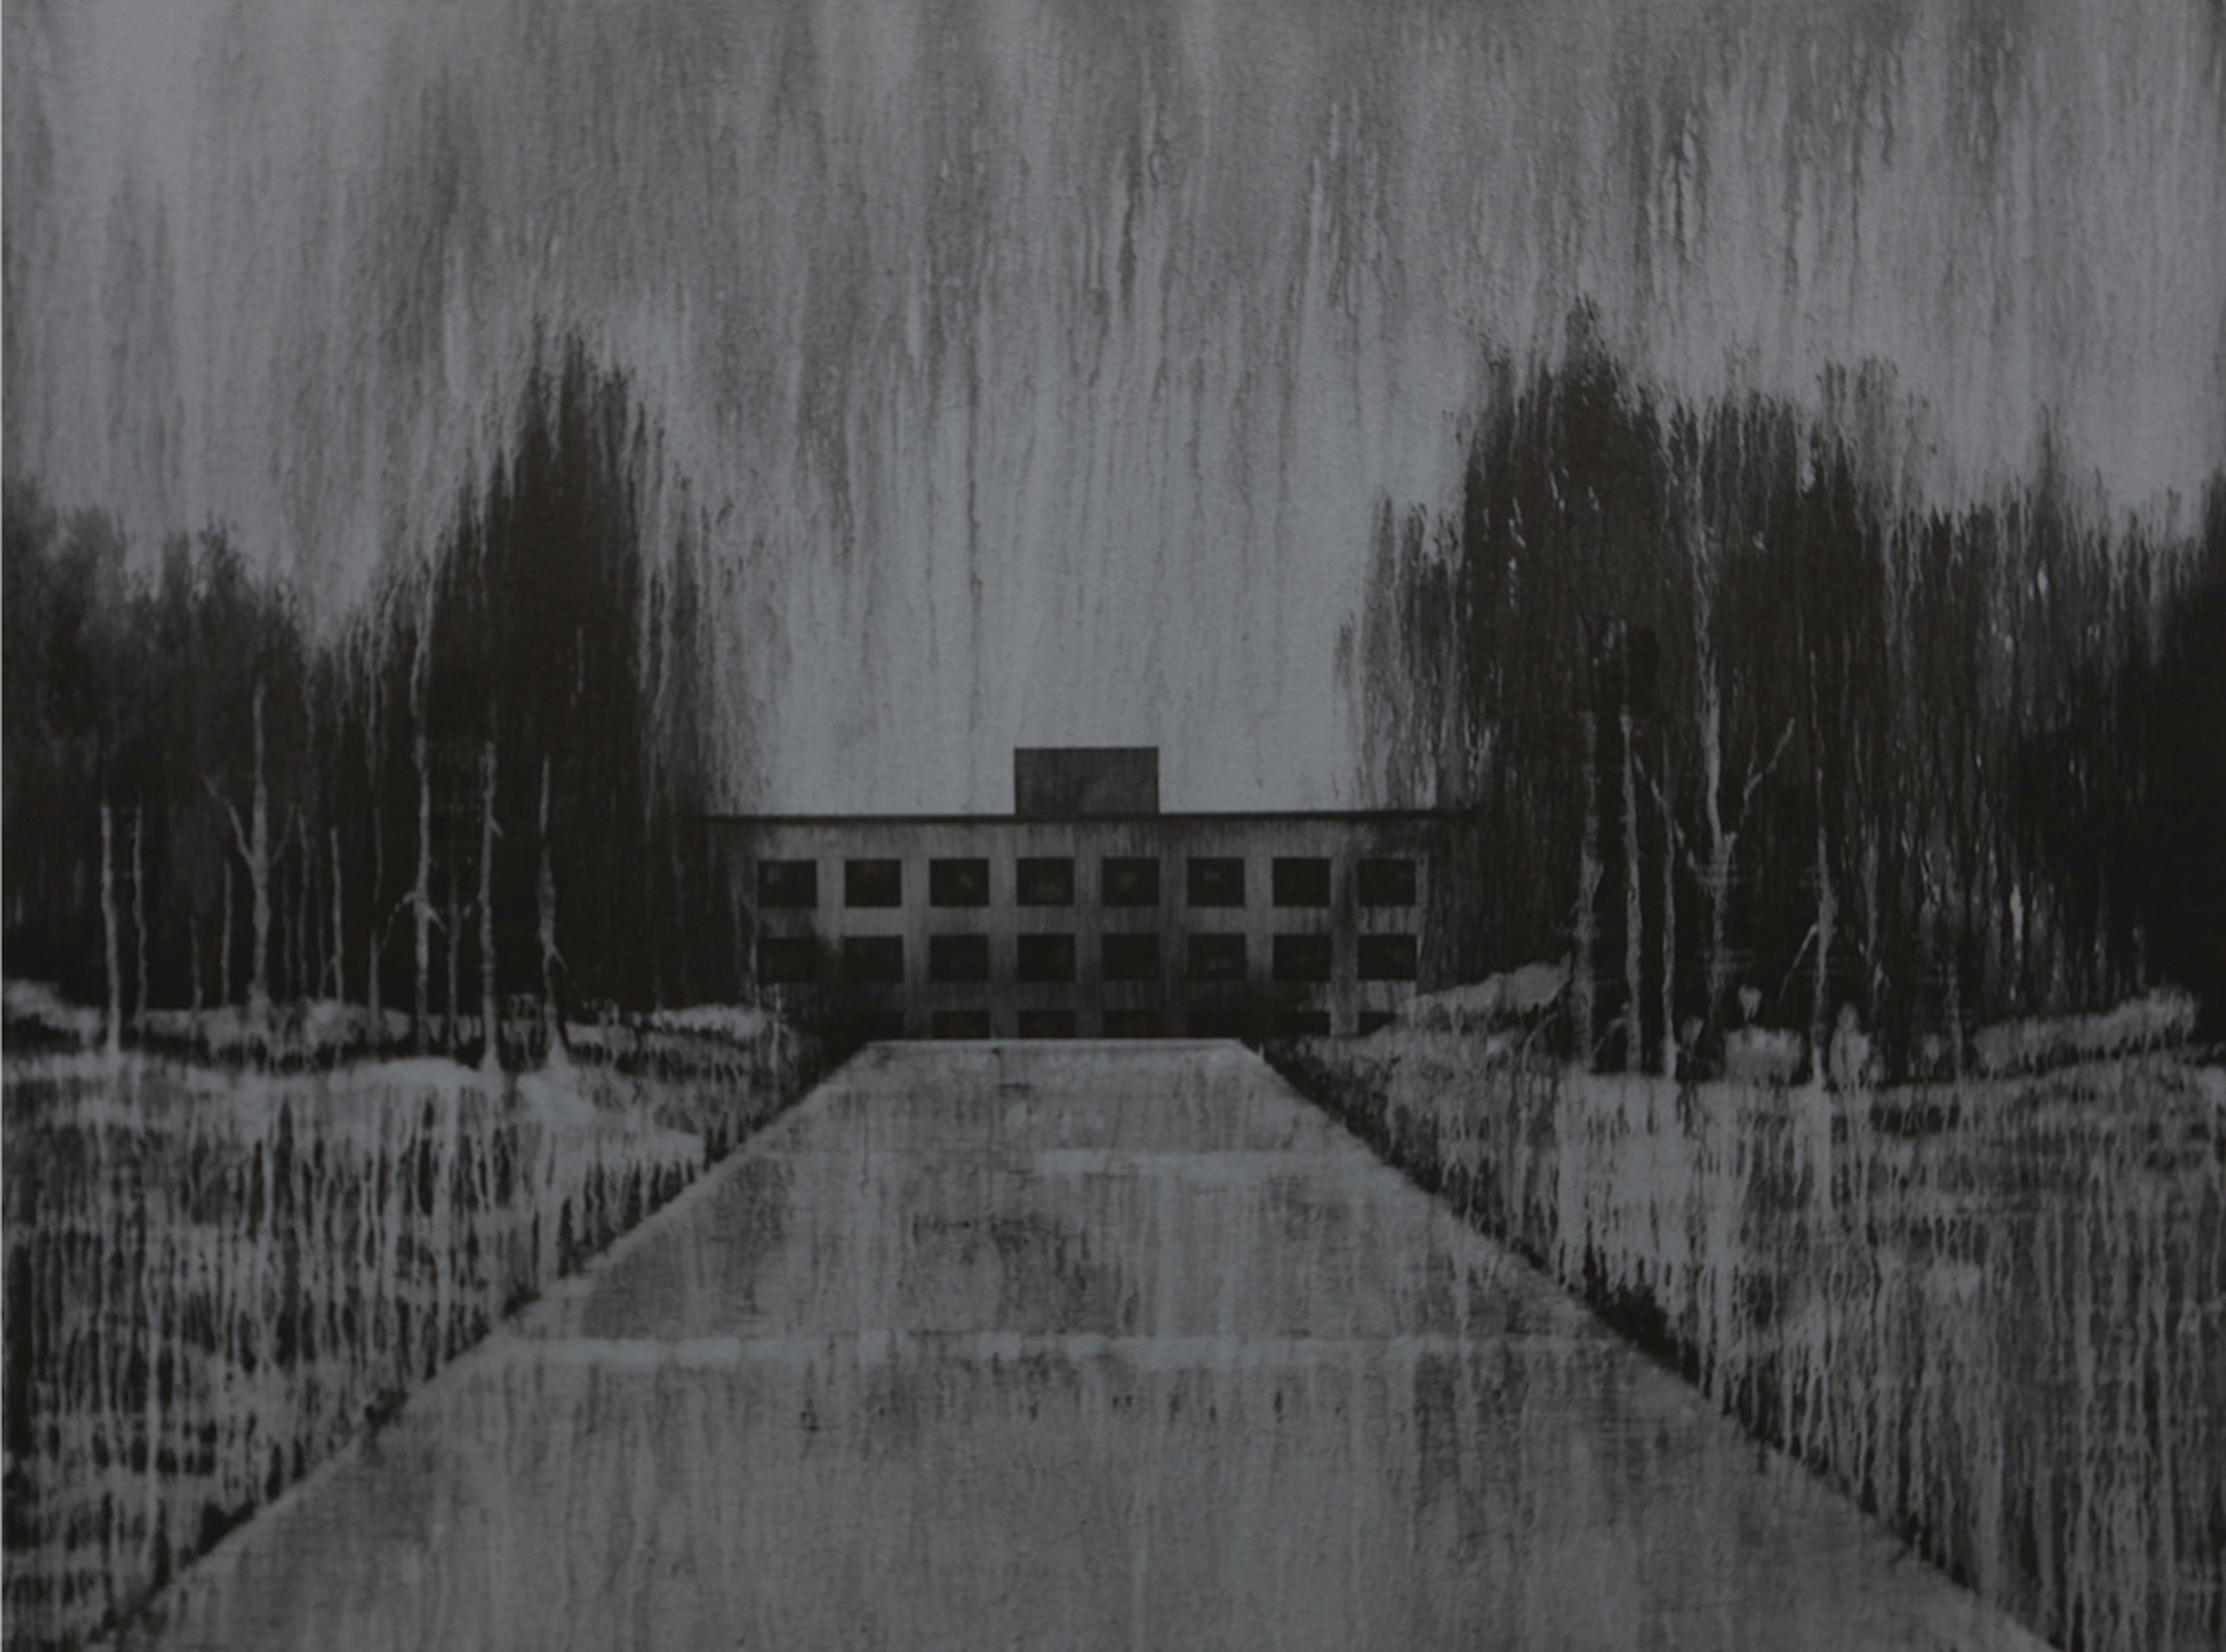 Andy Dewantoro, Monument 1986,    acrylic on canvas, 180 x 240 cm, 2011